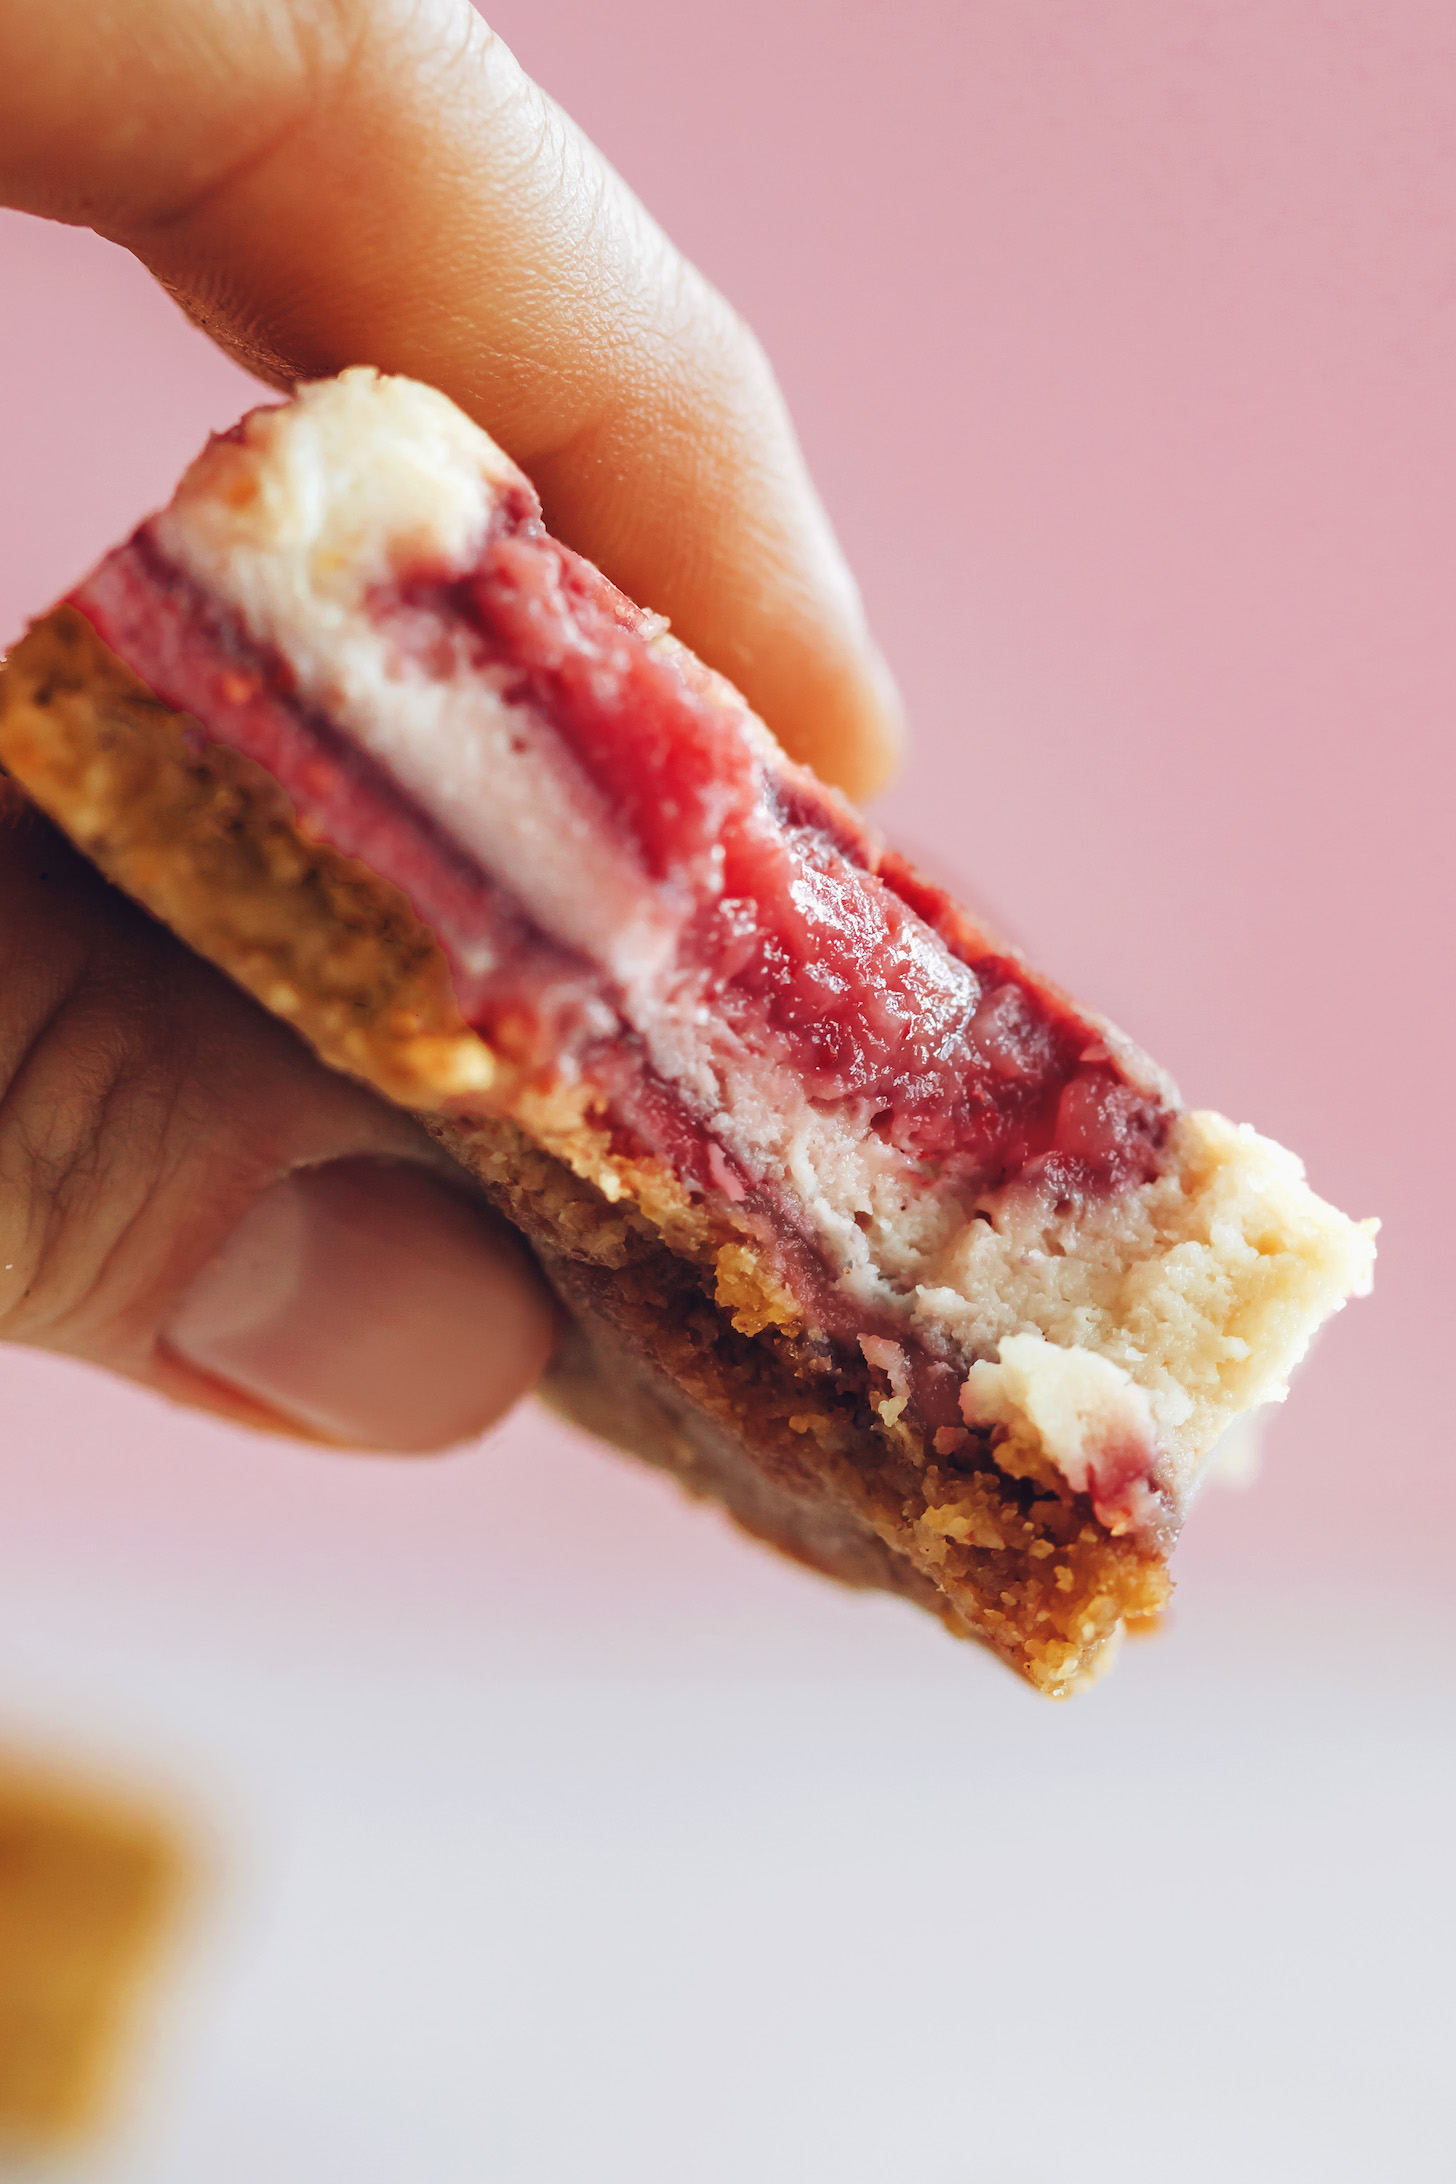 Holding up a strawberry cheesecake bar to show the texture